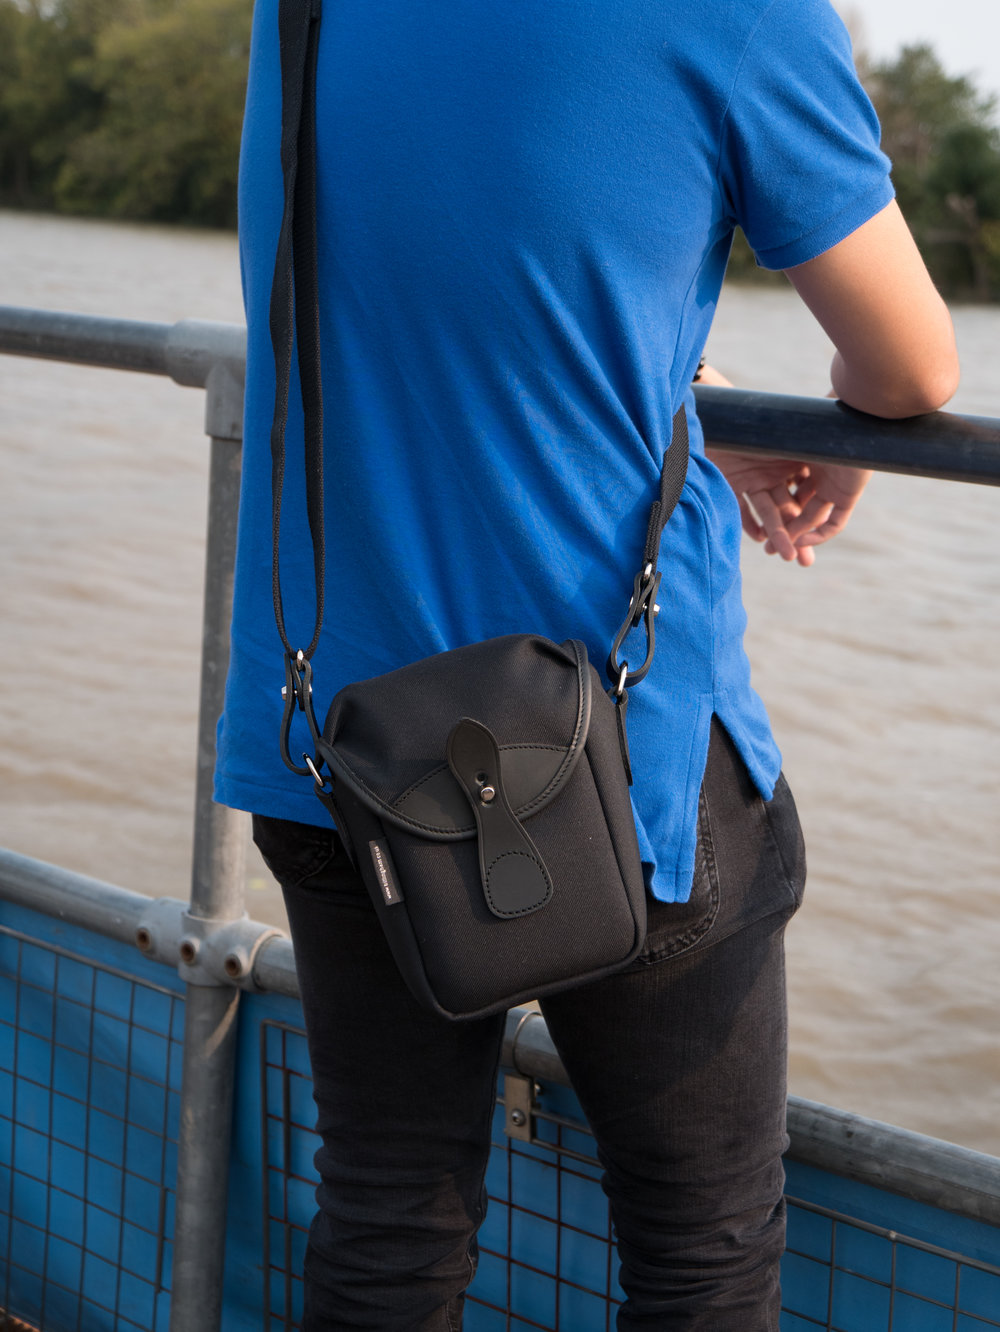 The Billingham 72 is a simple, single-purpose bag focused on fixed-lens compacts and smaller system cameras